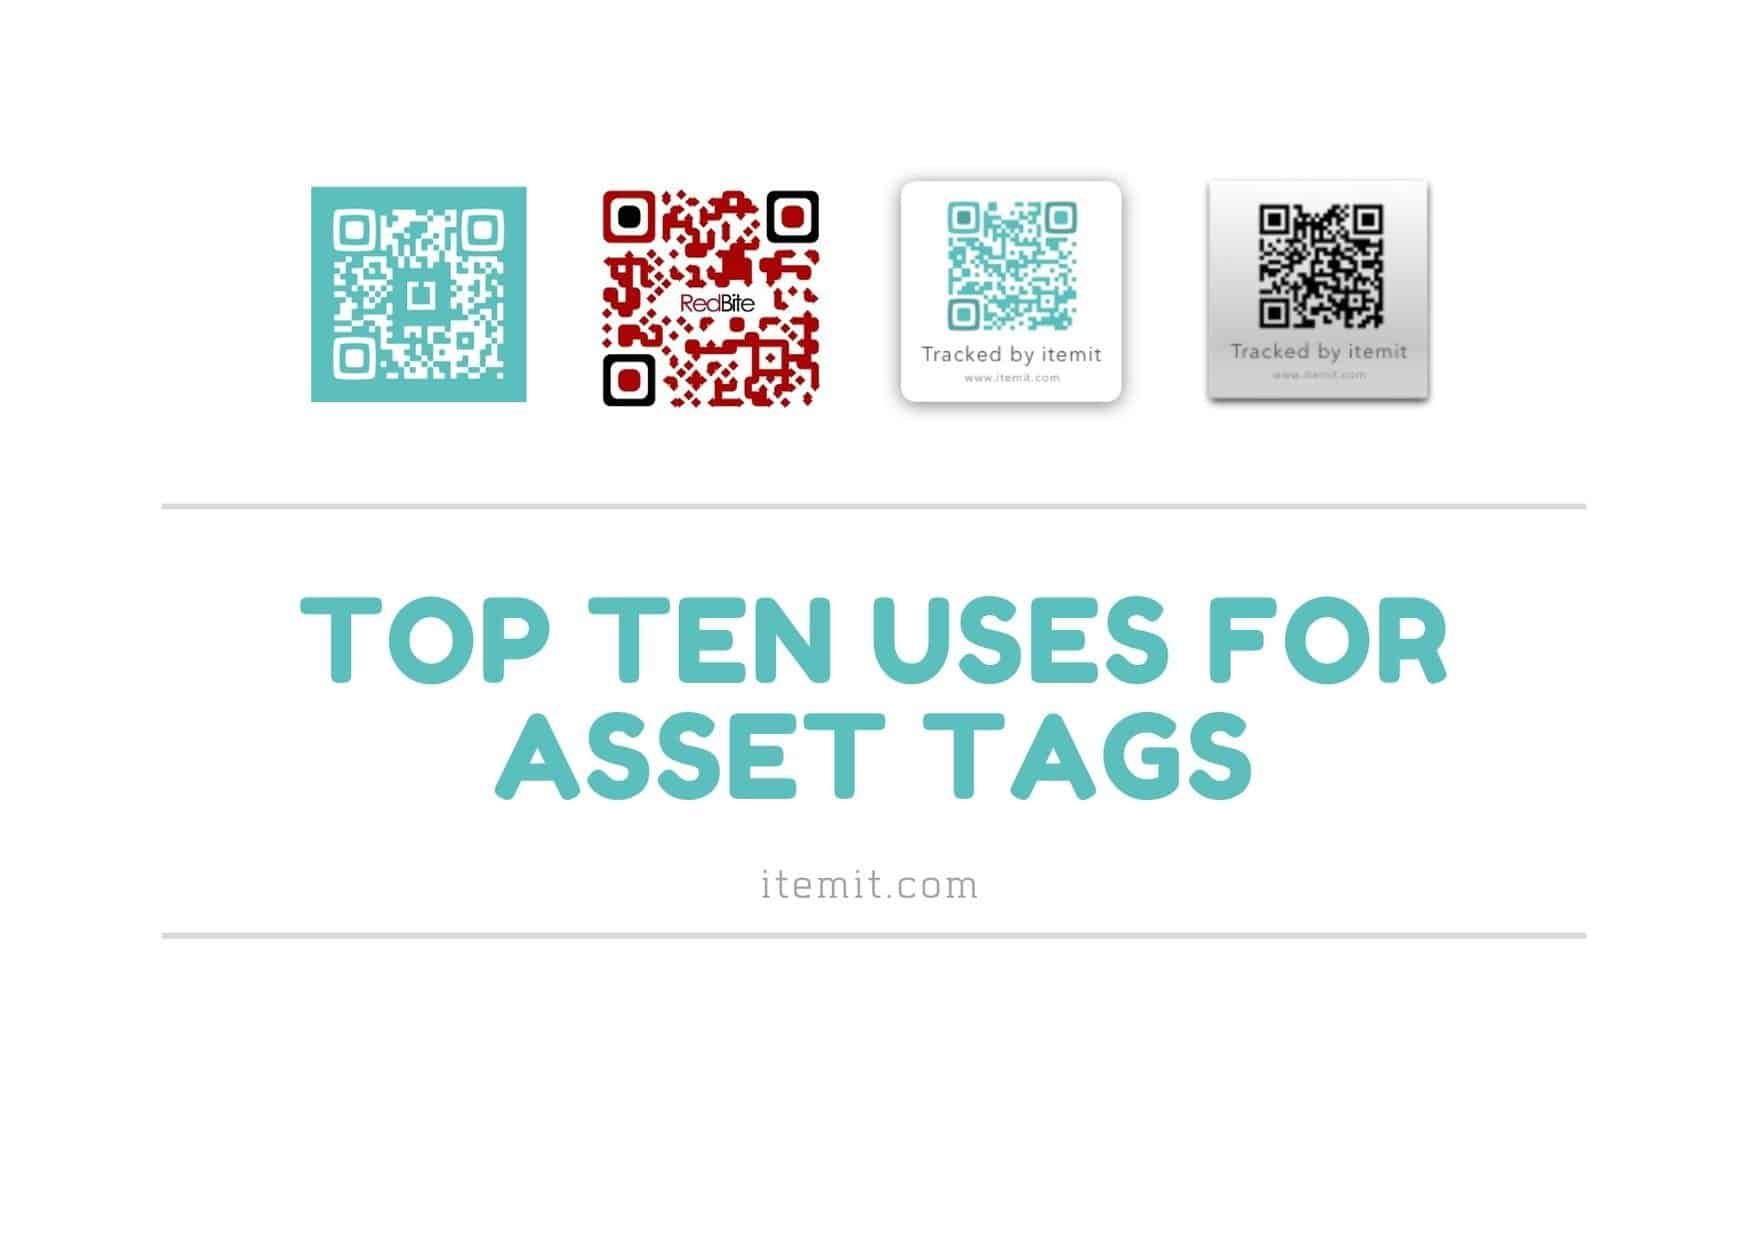 top ten uses of itemit asset tags